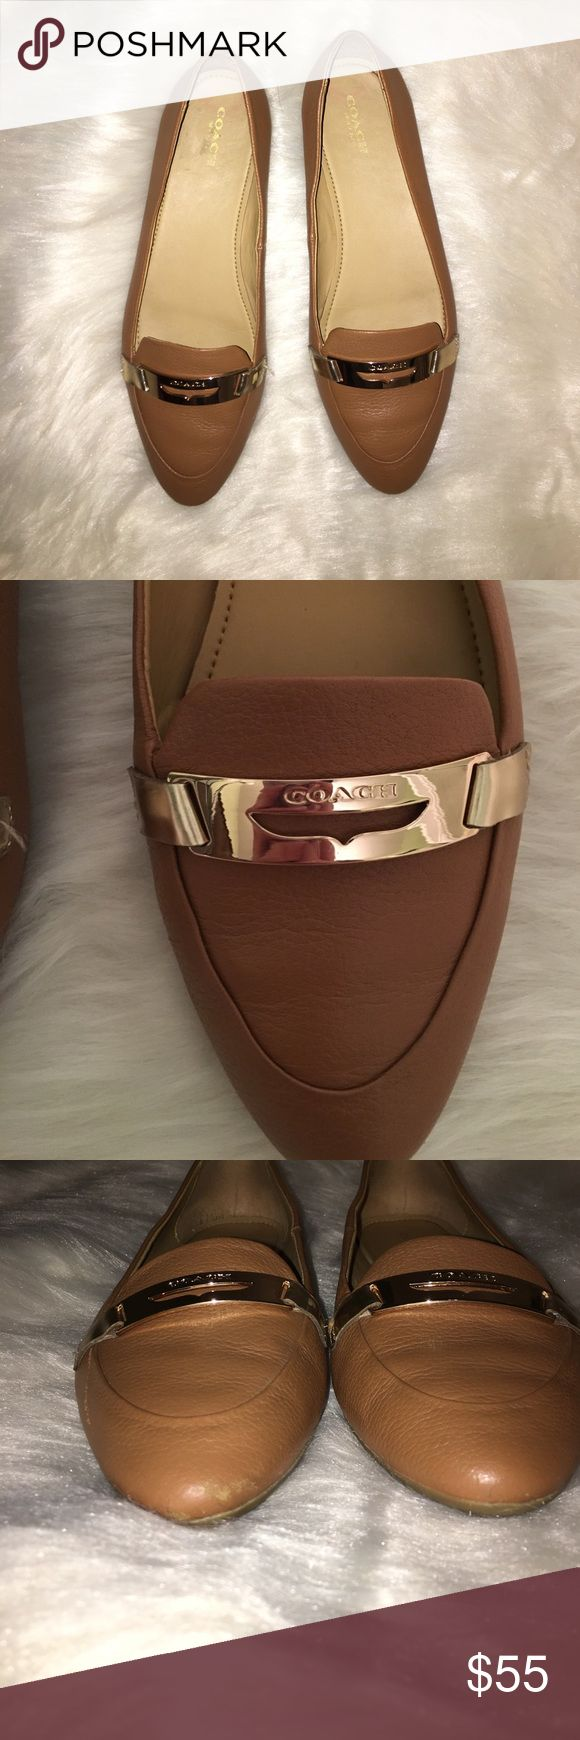 Coach flats Coach tan pointed flats. Gold hard ware. Logo on front. Worn a couple times, still in almost perfect condition. Abbot of wear on toes of shoes. Small scratch on outside of right shoes (pic 6) and scratch on gold paint inner edge of shoe (pic 7). No wear on bottom of shoes. Coach Shoes Flats & Loafers